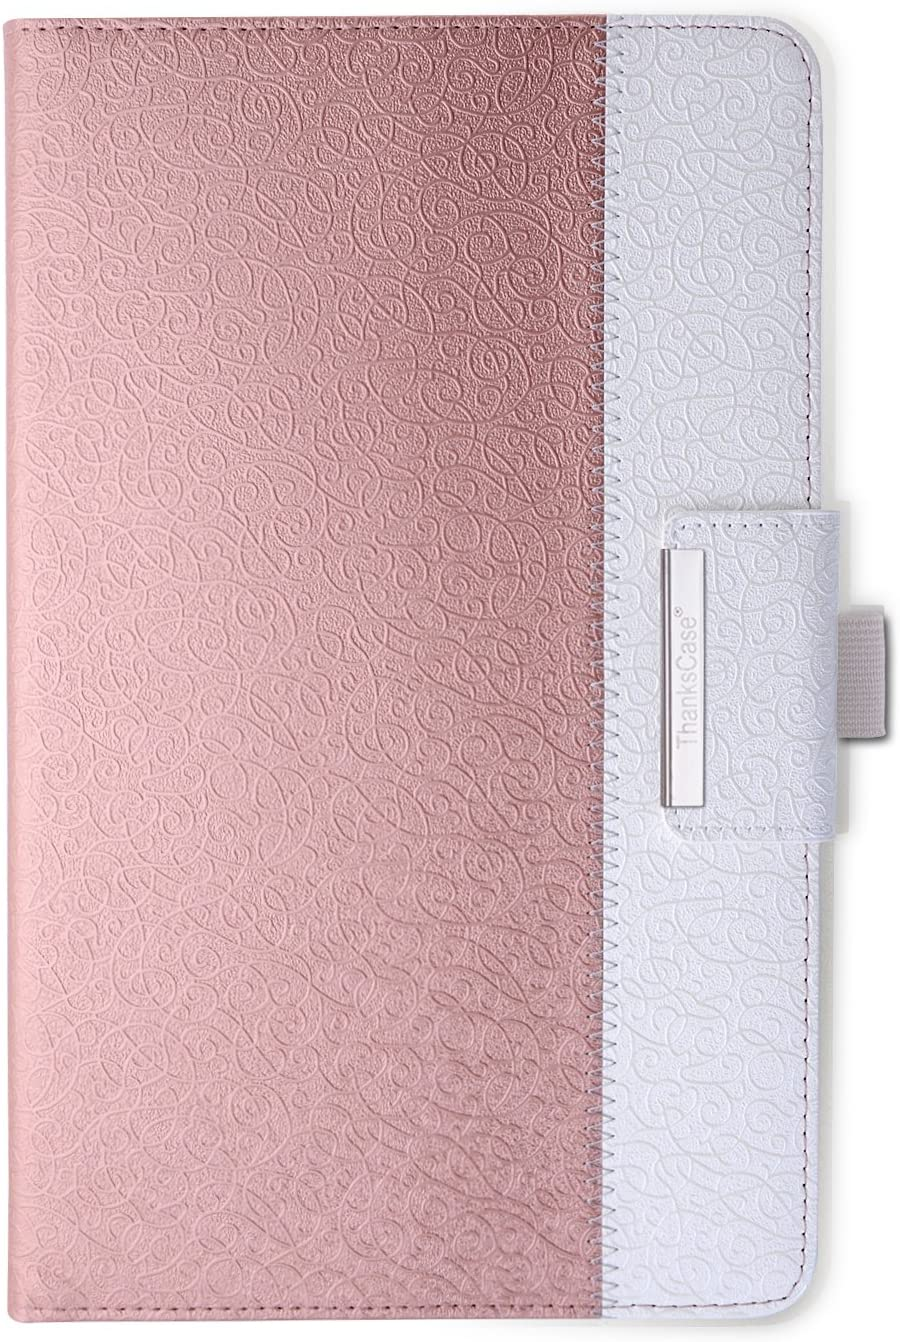 Thankscase Case for Galaxy Tab A 10.1 2016 No S Pen, Rotating Case Cover Build-in Wallet Pocket, Hand Strap, Beautiful Embossed Pattern, Smart Cover for Galaxy Tab A 10.1 SM-T580/T585/T587(Rose Gold)